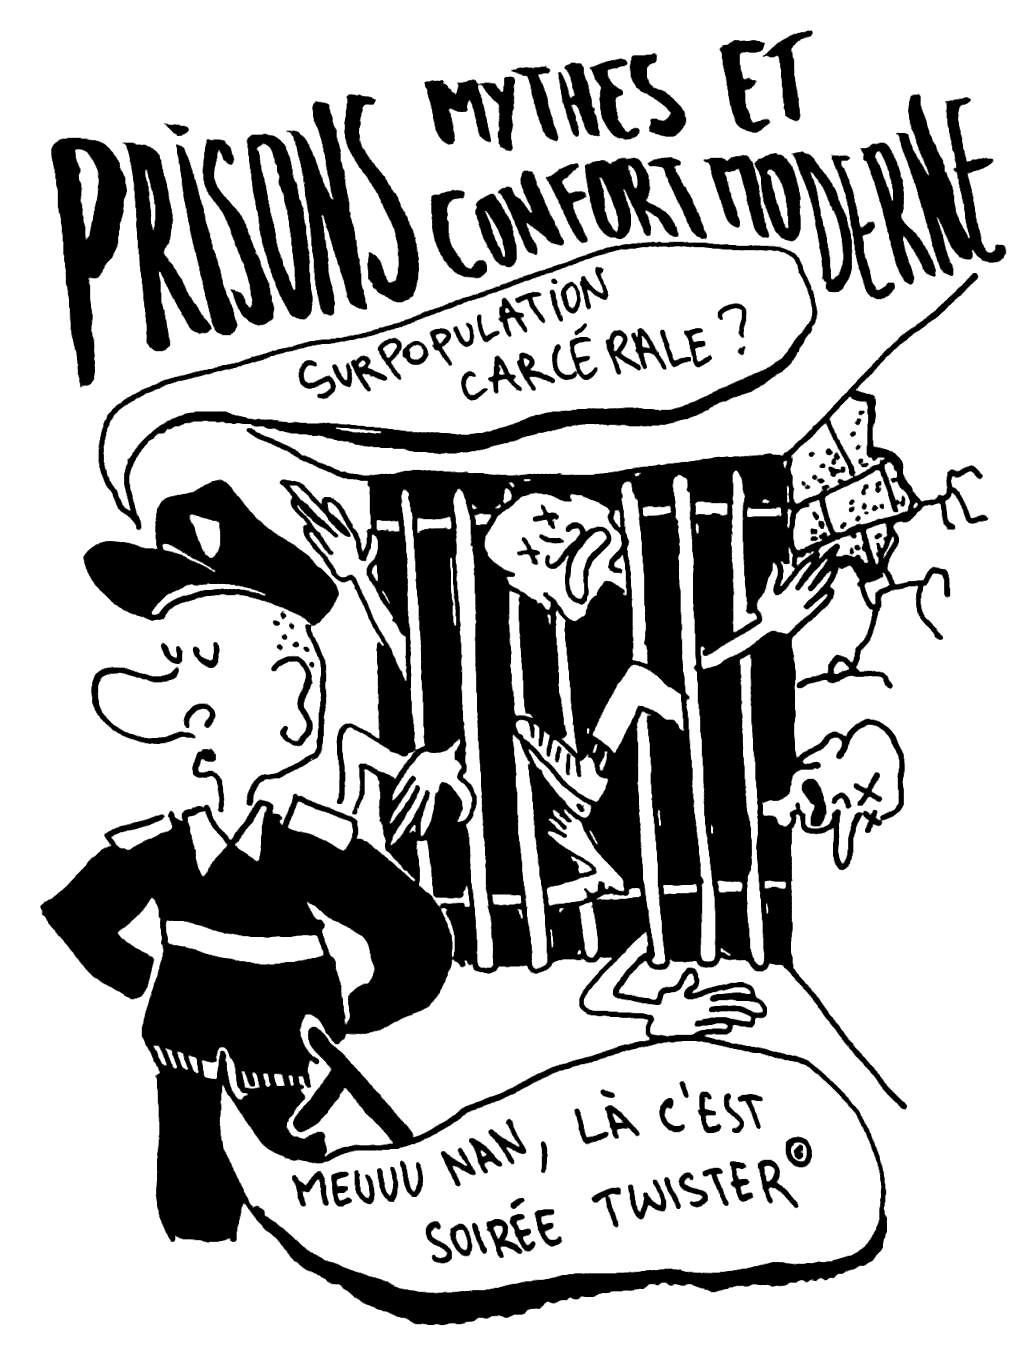 Prisons : mythes et confort moderne